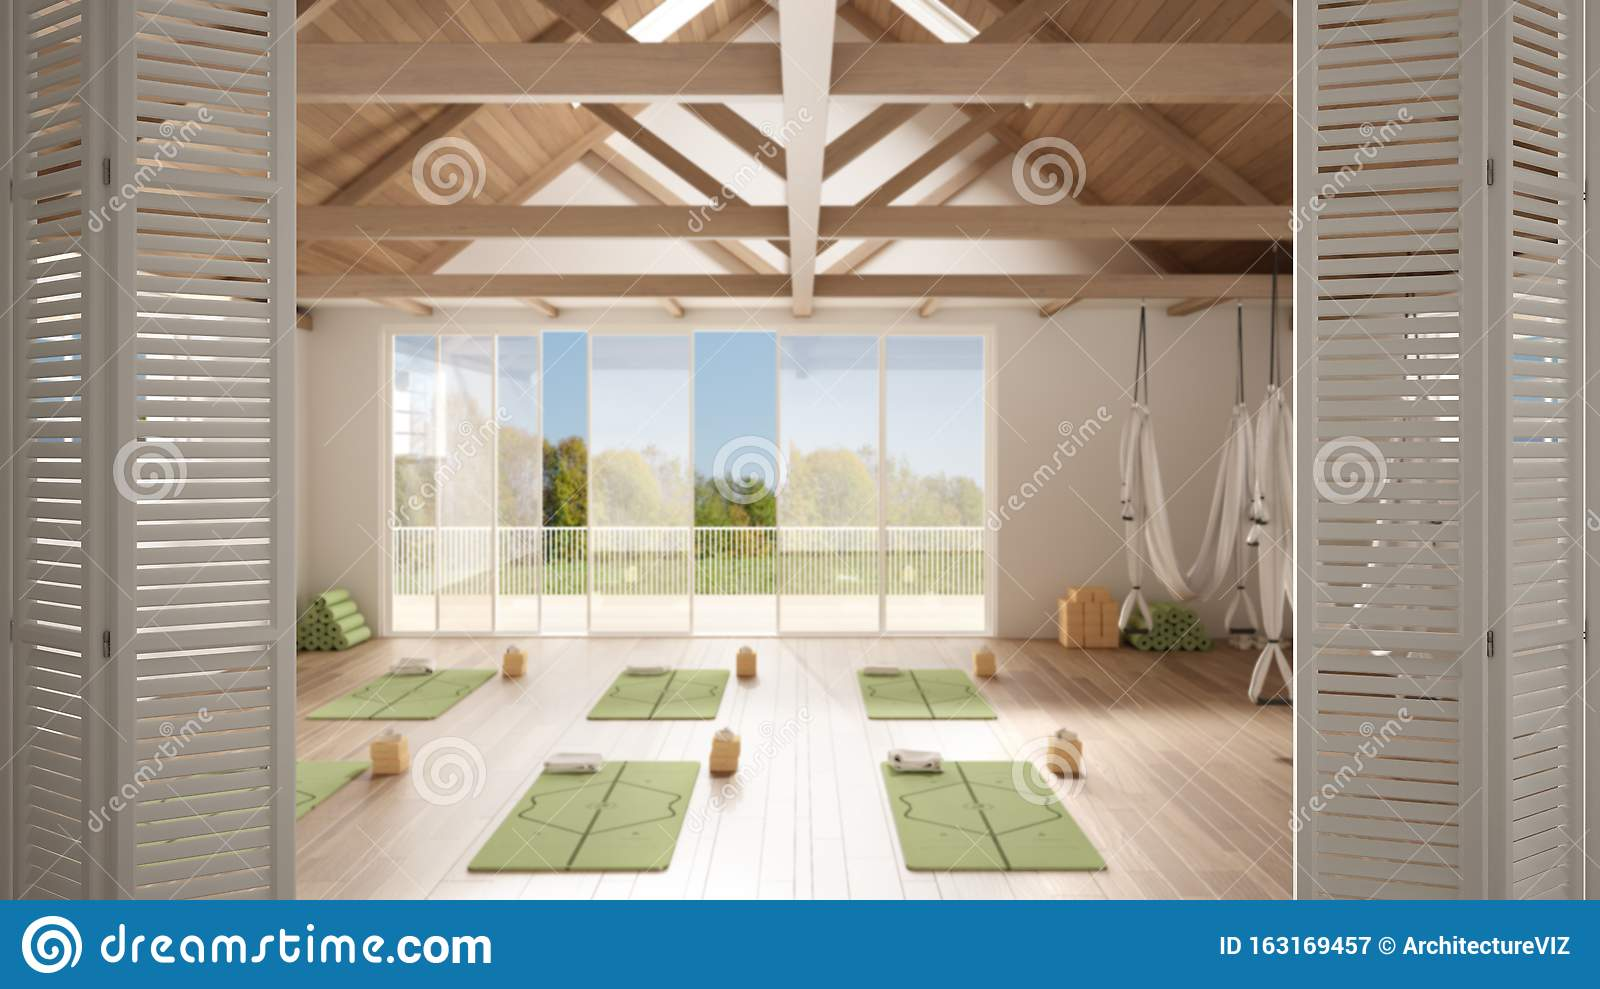 White Folding Door Opening On Empty Yoga Studio Interior Design Minimal Open Space With Mats And Accessories Wooden Roof Ready Stock Illustration Illustration Of Creative Project 163169457